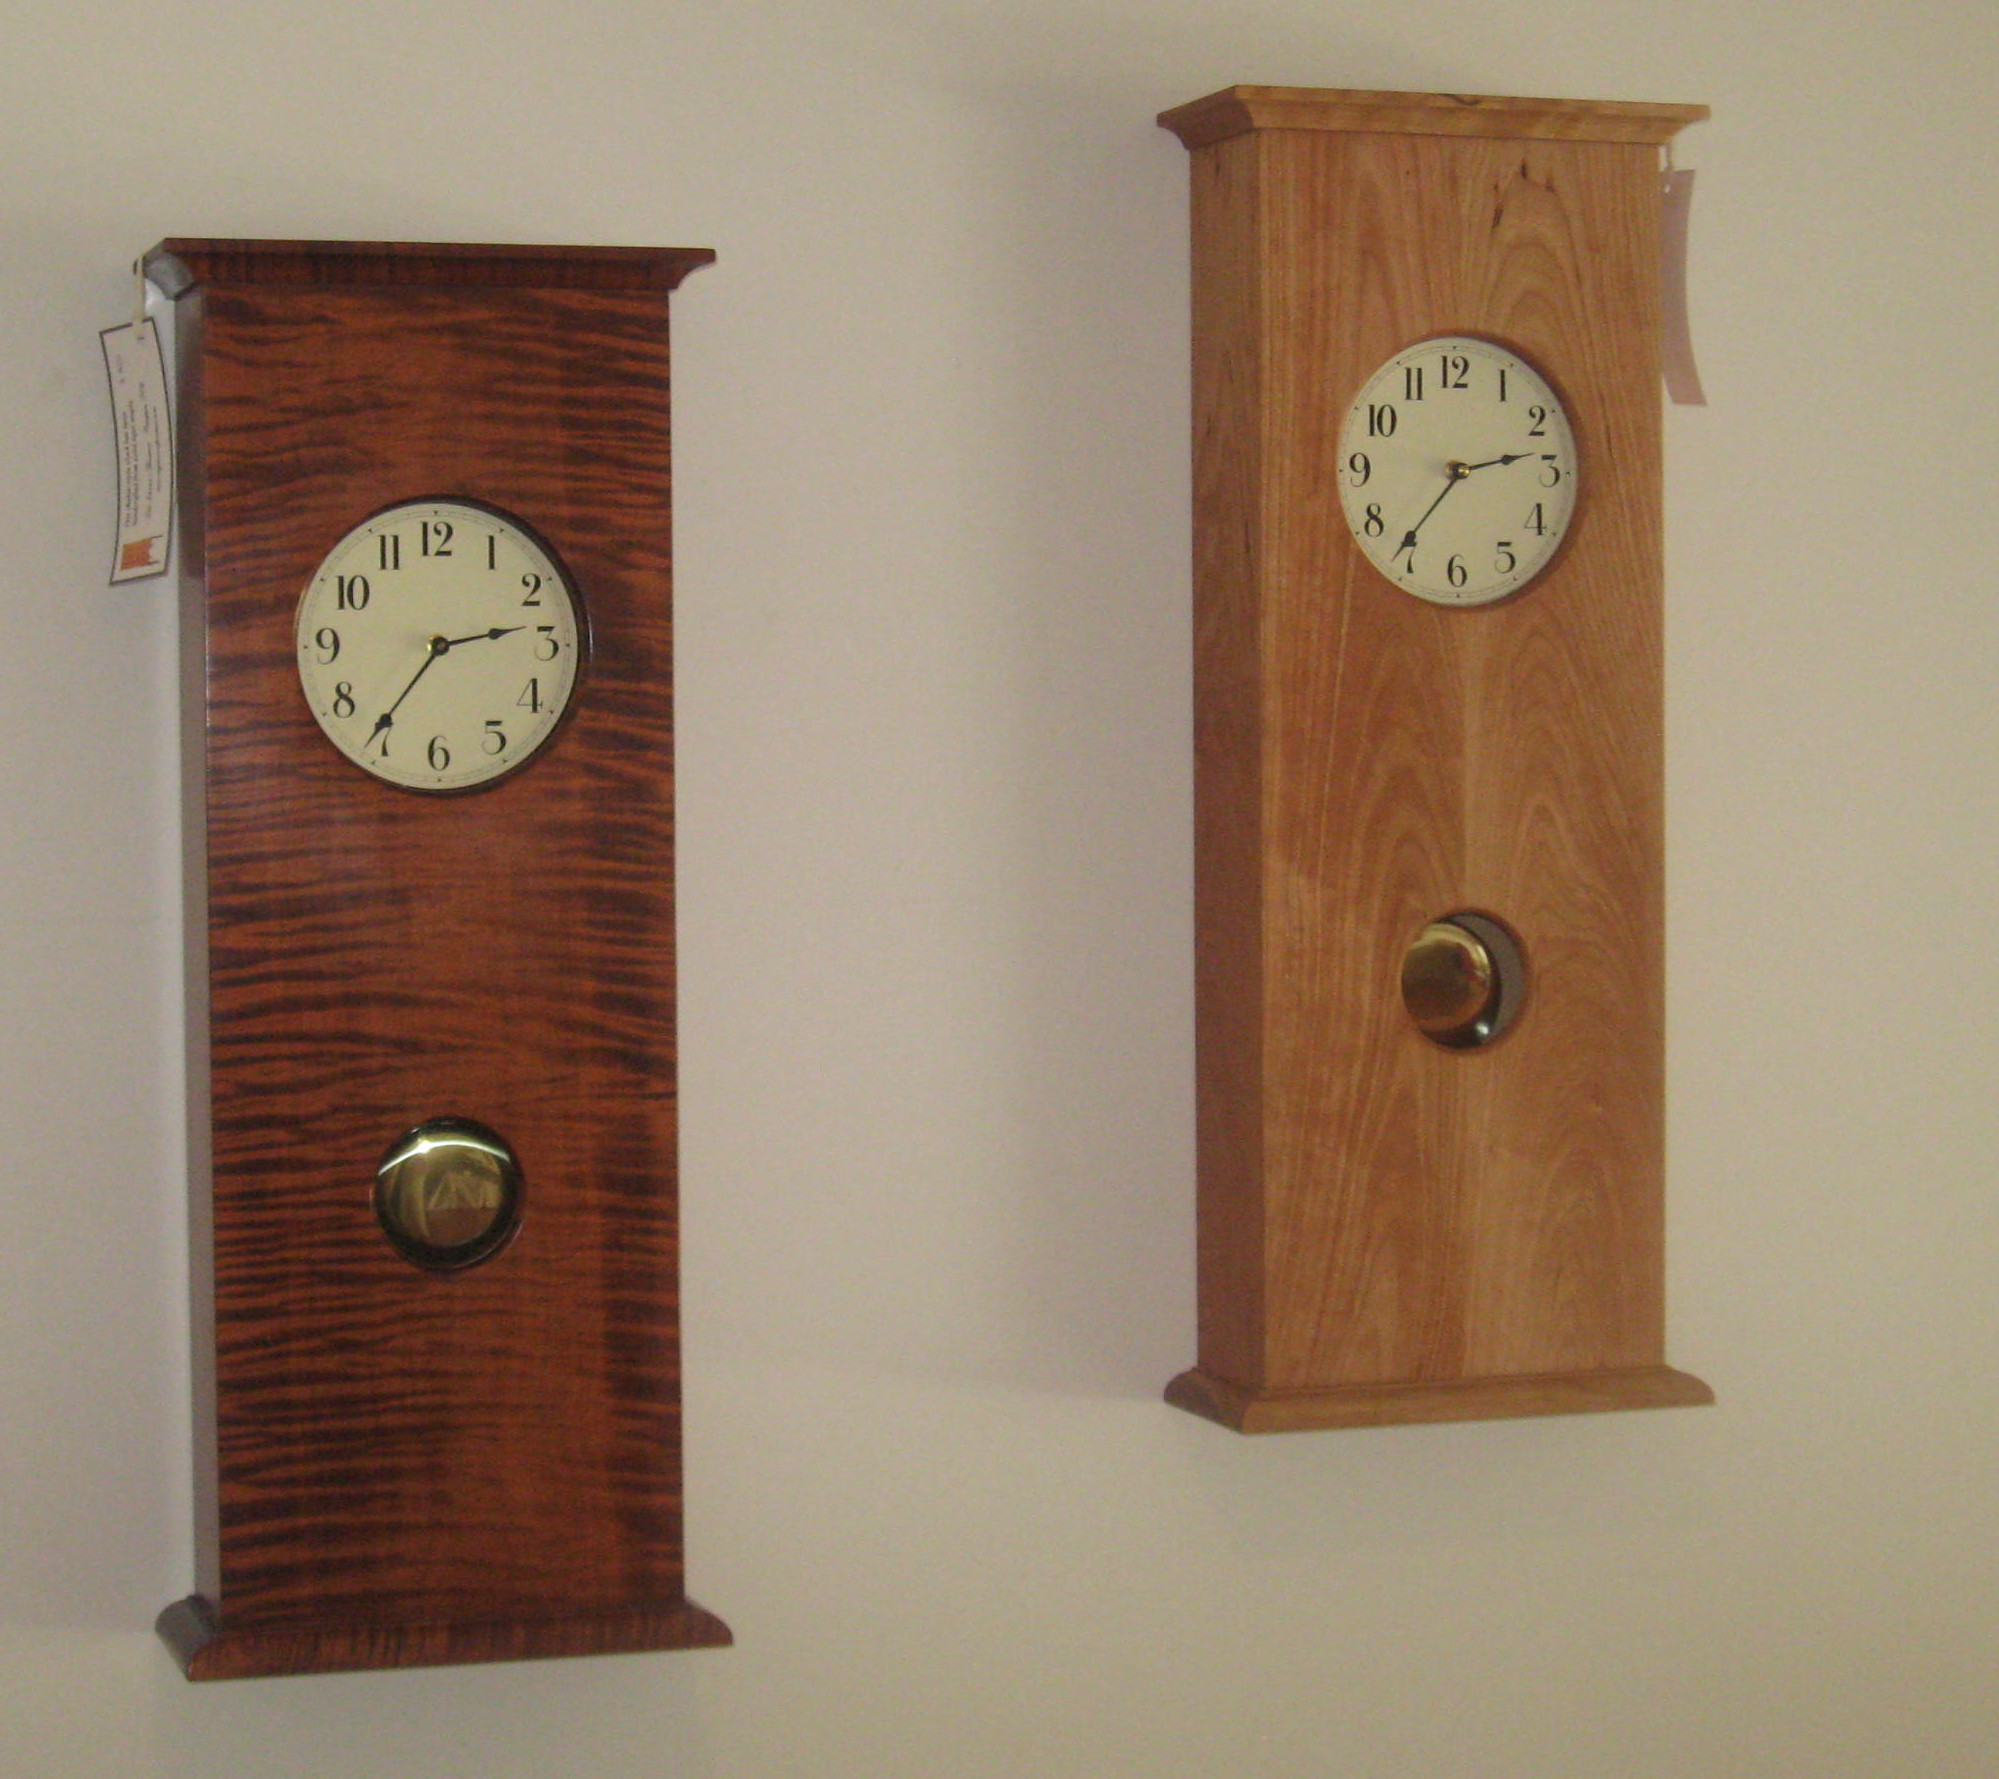 Shaker wall clock image collections home wall decoration ideas shaker wall clock choice image home wall decoration ideas shaker wall clock image collections home wall amipublicfo Image collections